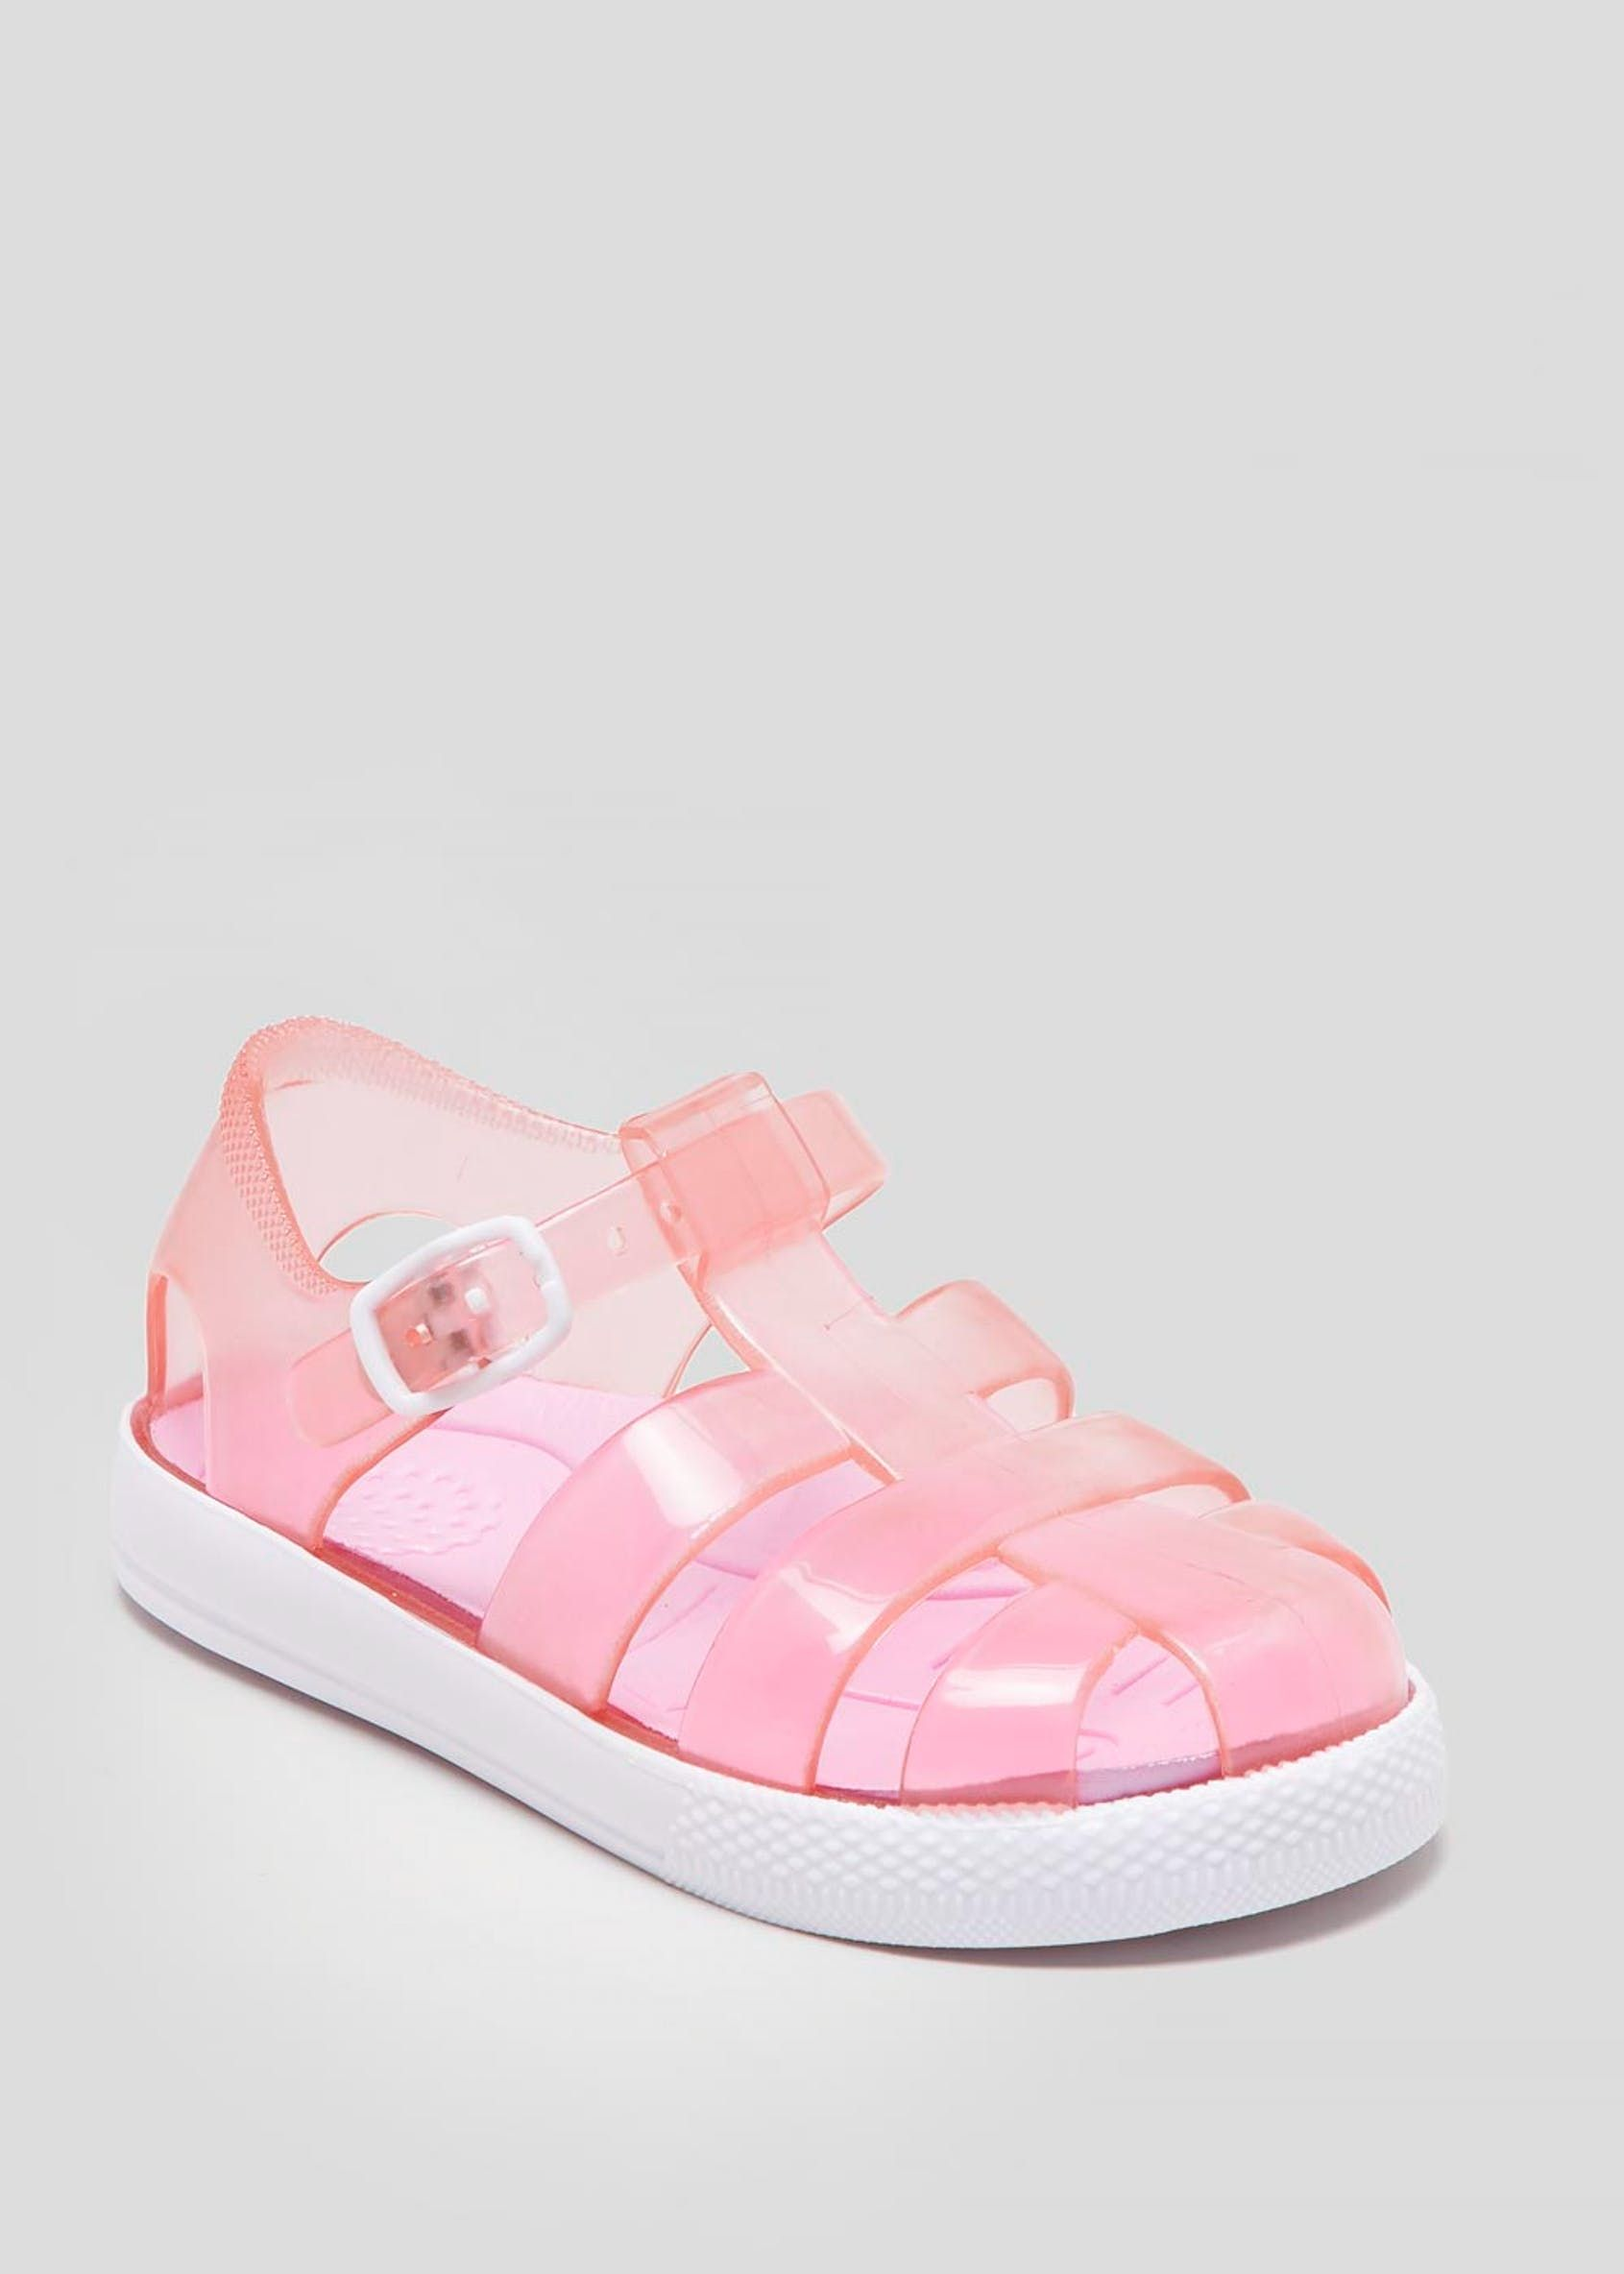 ec302e870941 Kids Caged Jelly Shoes (Younger 4-12) – Pink